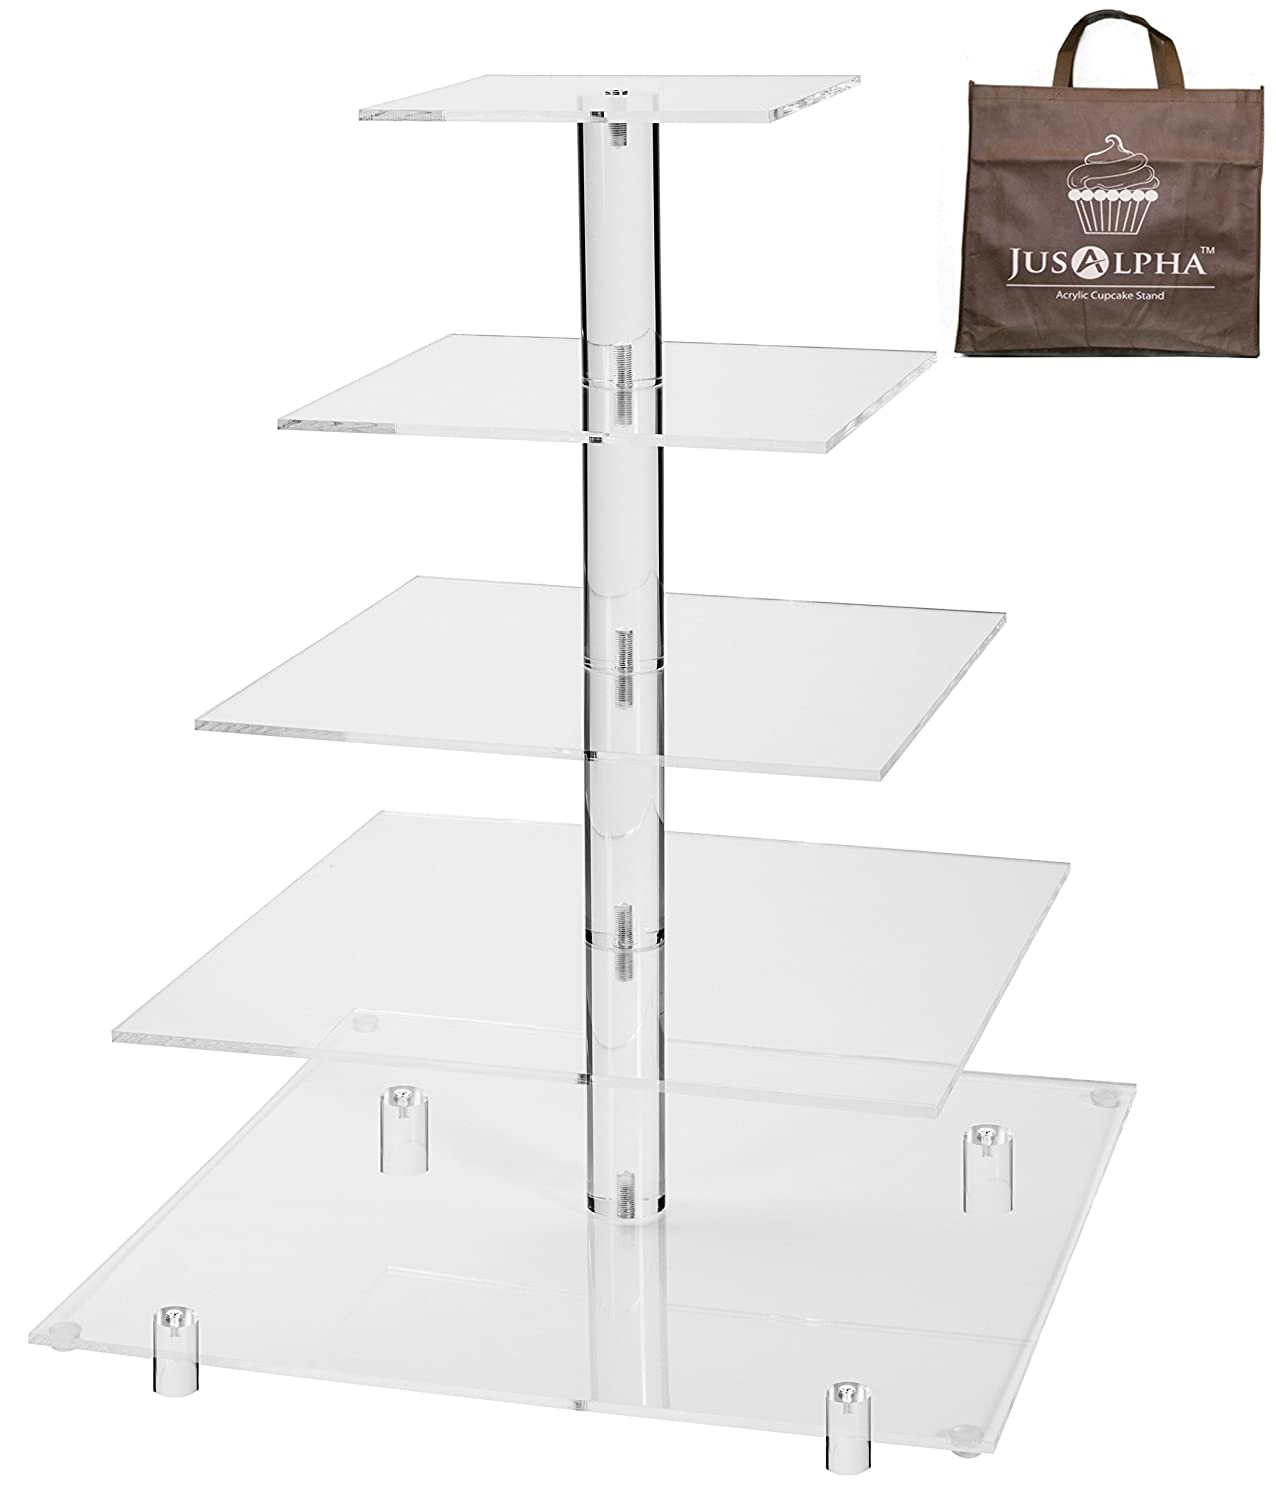 Jusalpha 5 Tier Acrylic Square Wedding Cake Stand/Cupcake Stand Tower/Dessert Stand/Pastry Serving Platter/Food Display Stand (5SF) COMINHKPR87107